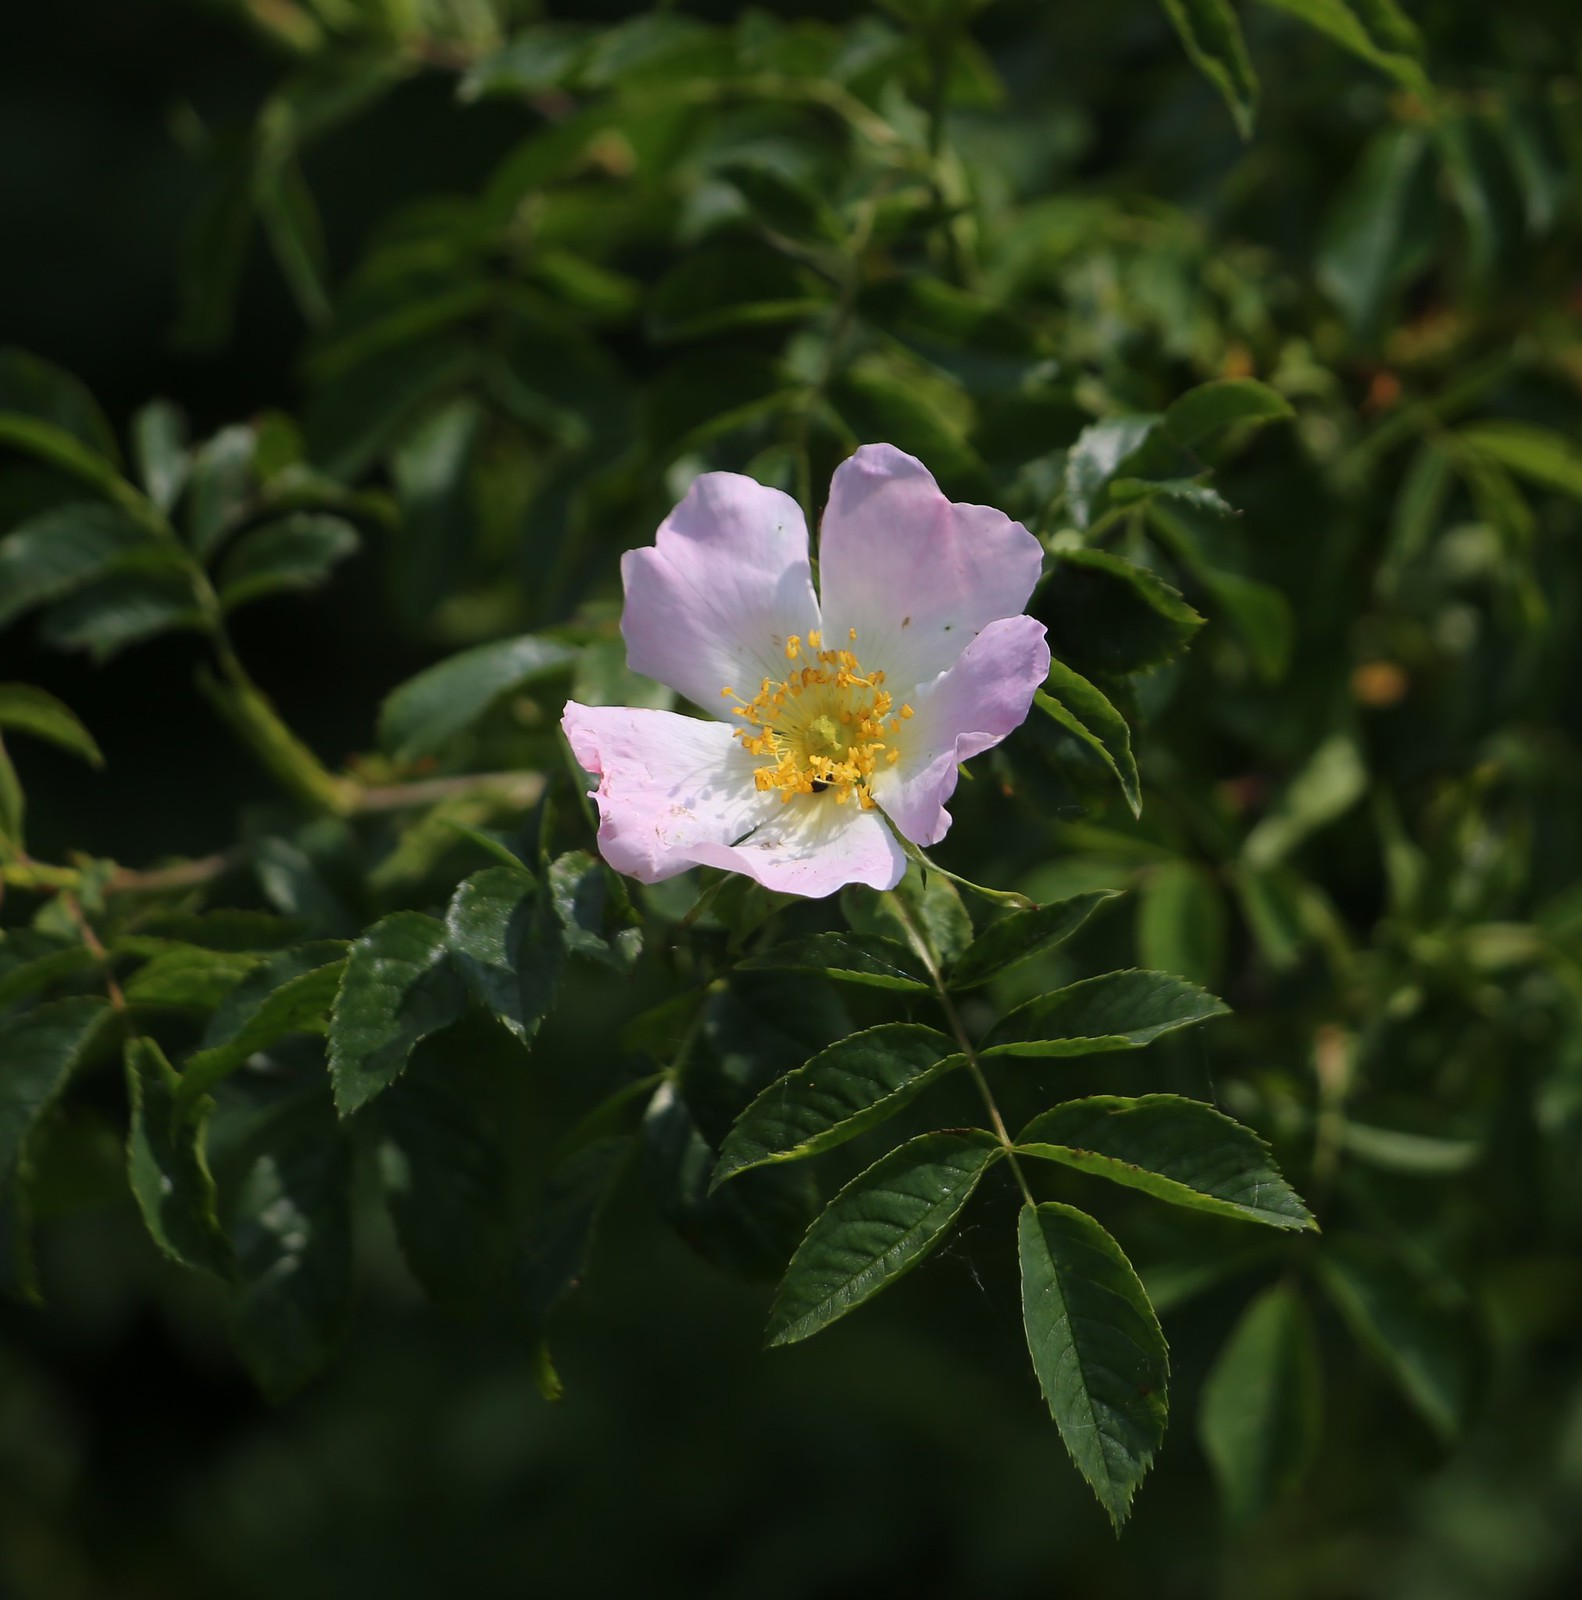 Dog Rose - Otford to Eynsford Walk